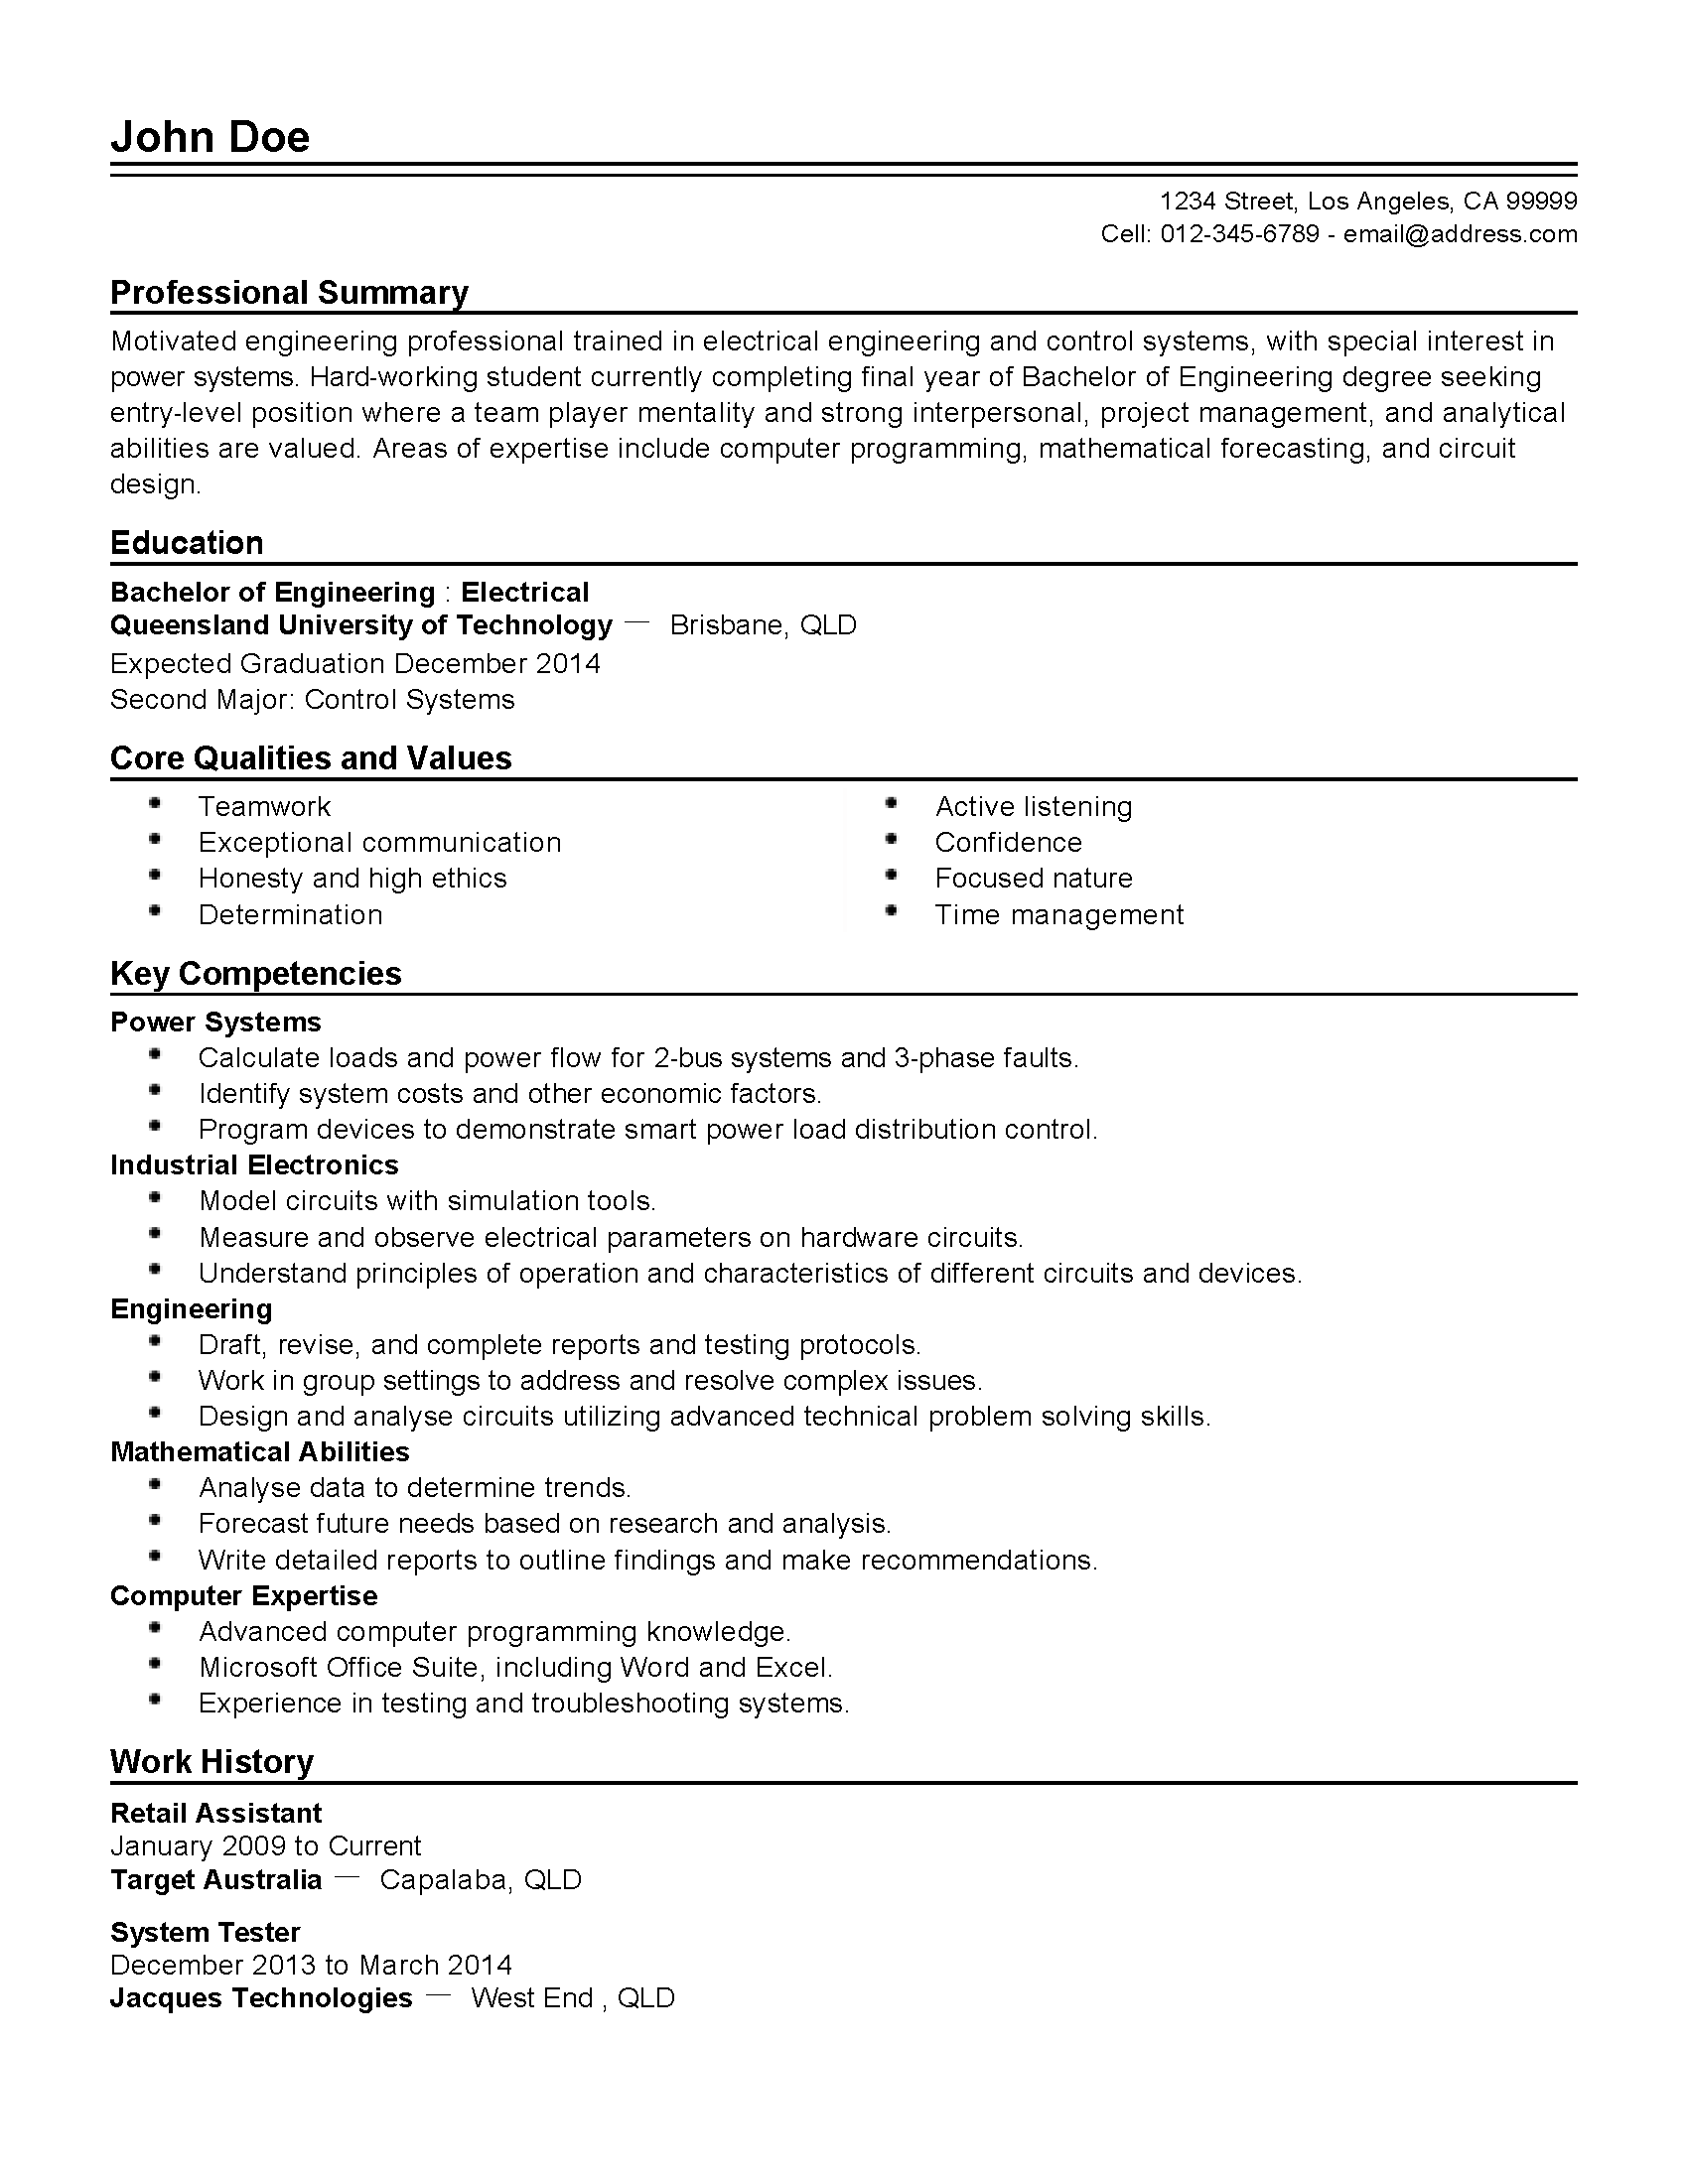 Service Engineer Resume Format Medical Field Service Engineer Resume